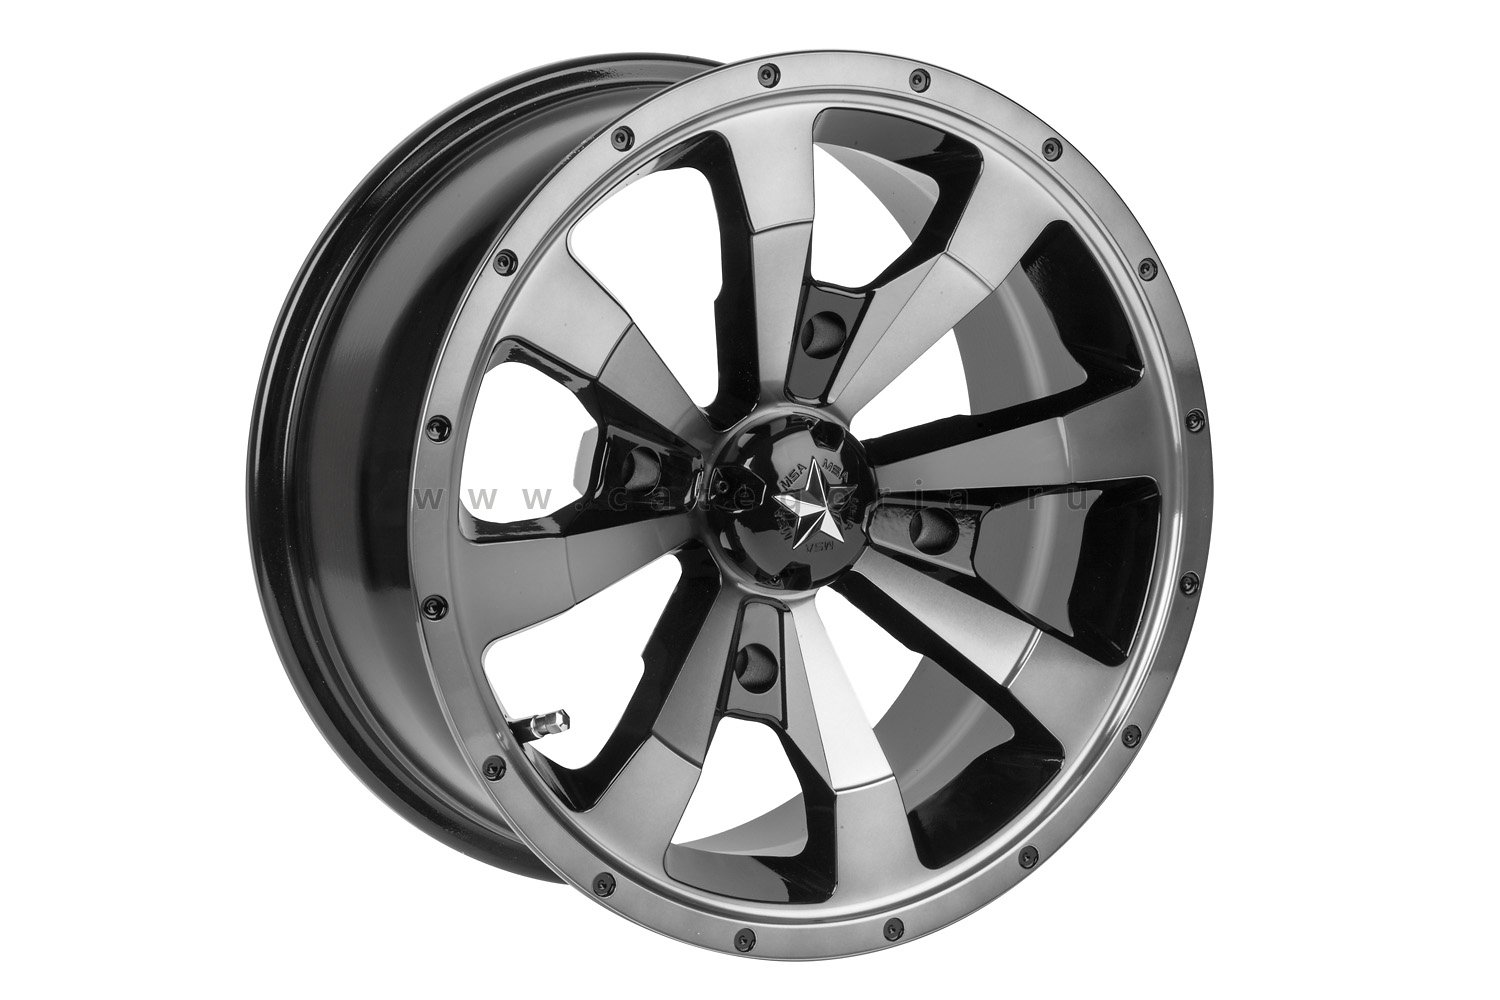 MSA M22 R15x7, 4x156, +15mm Enduro Dark Tint - диск колесный